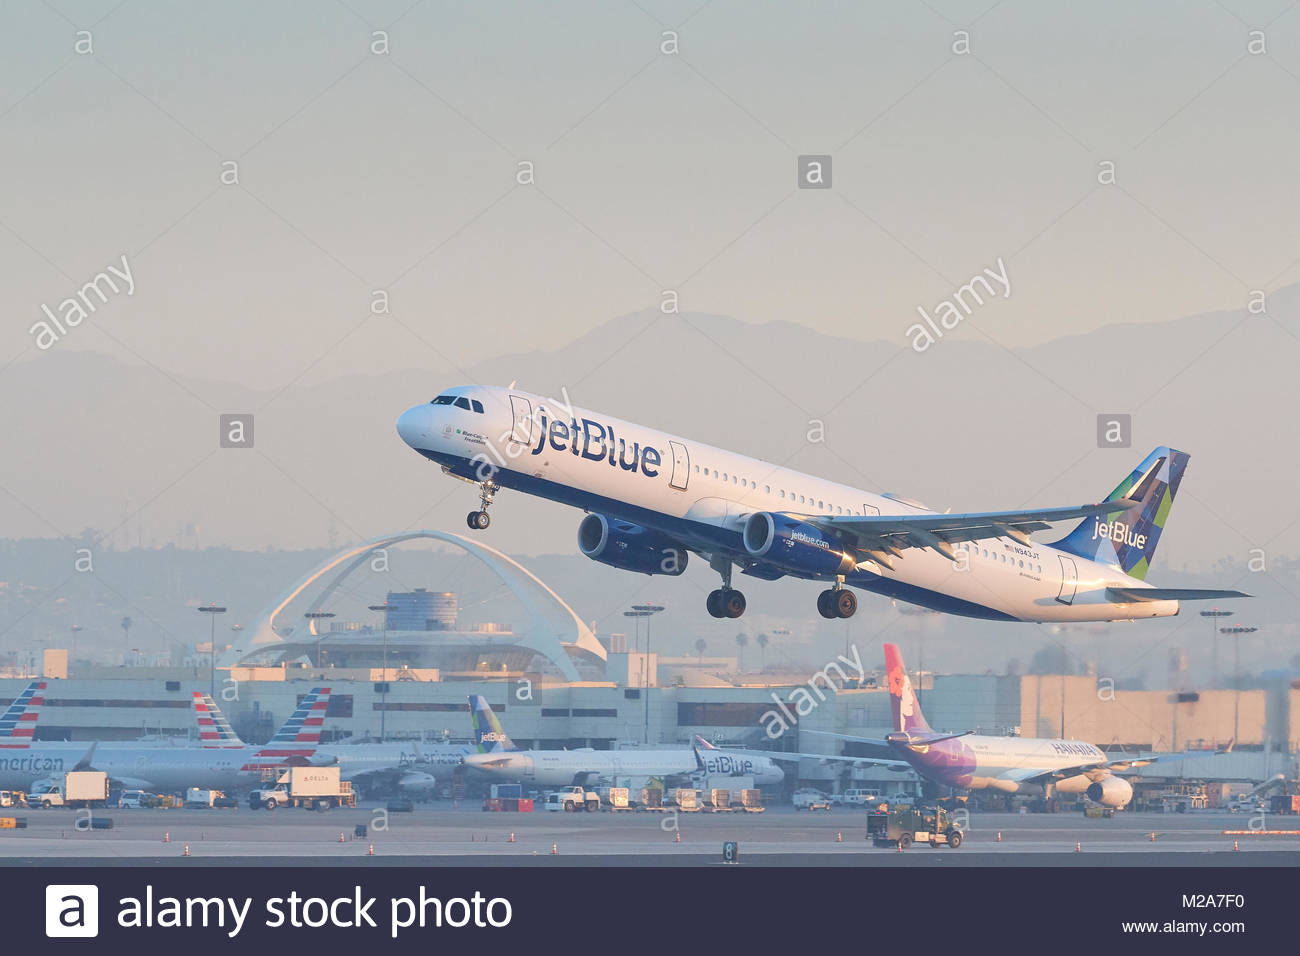 jetBlue Airways Airbus A321 Jet Airliner Taking Off From Runway 25 1300x956